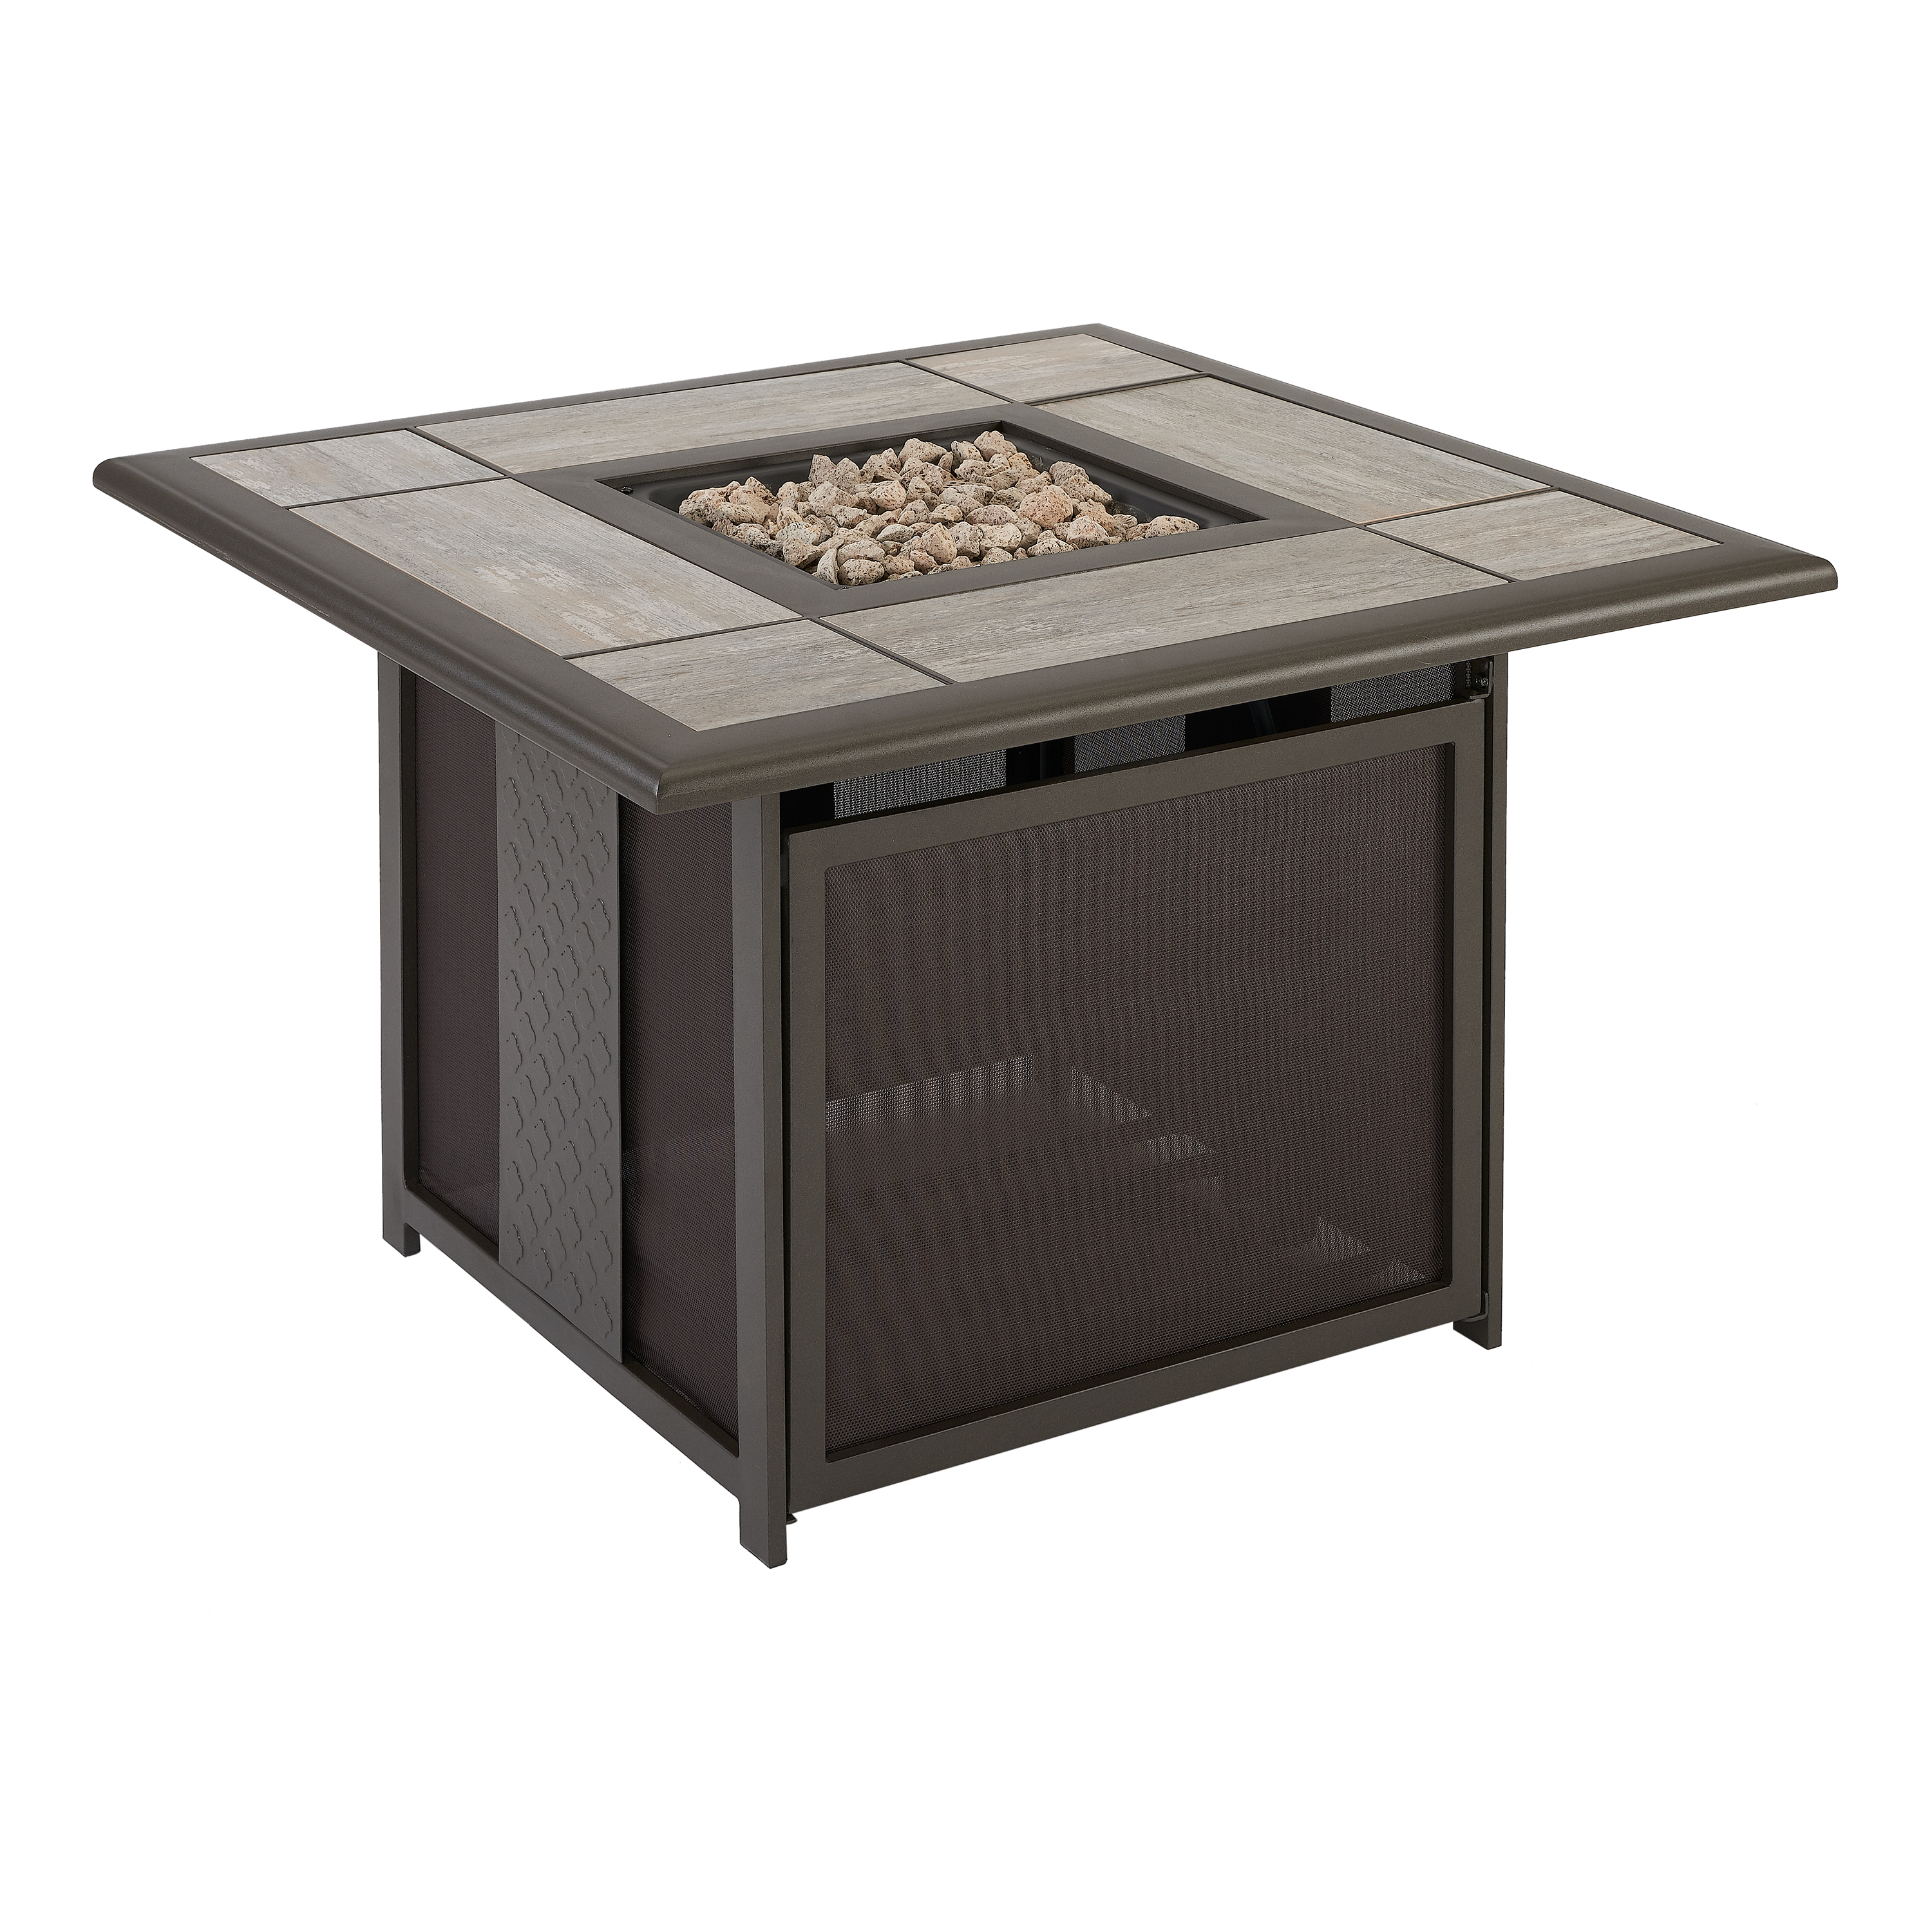 Better Homes & Gardens Everson Square Outdoor Tile-Top Fire Pit with Mesh Spark Guard